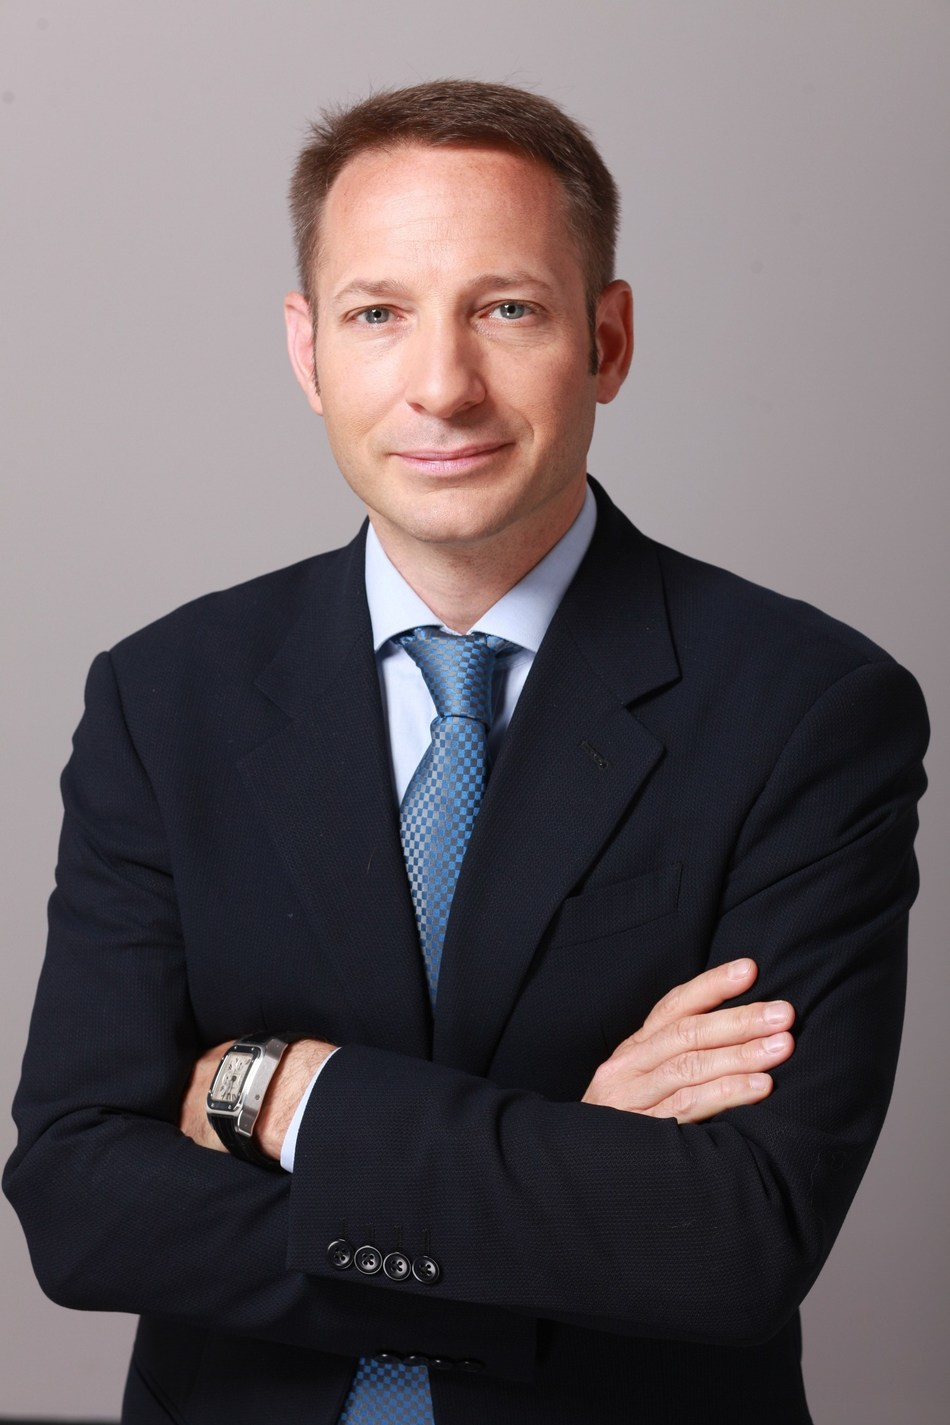 Dr. John Malatesta, CEO and Executive Chairman, Codewise